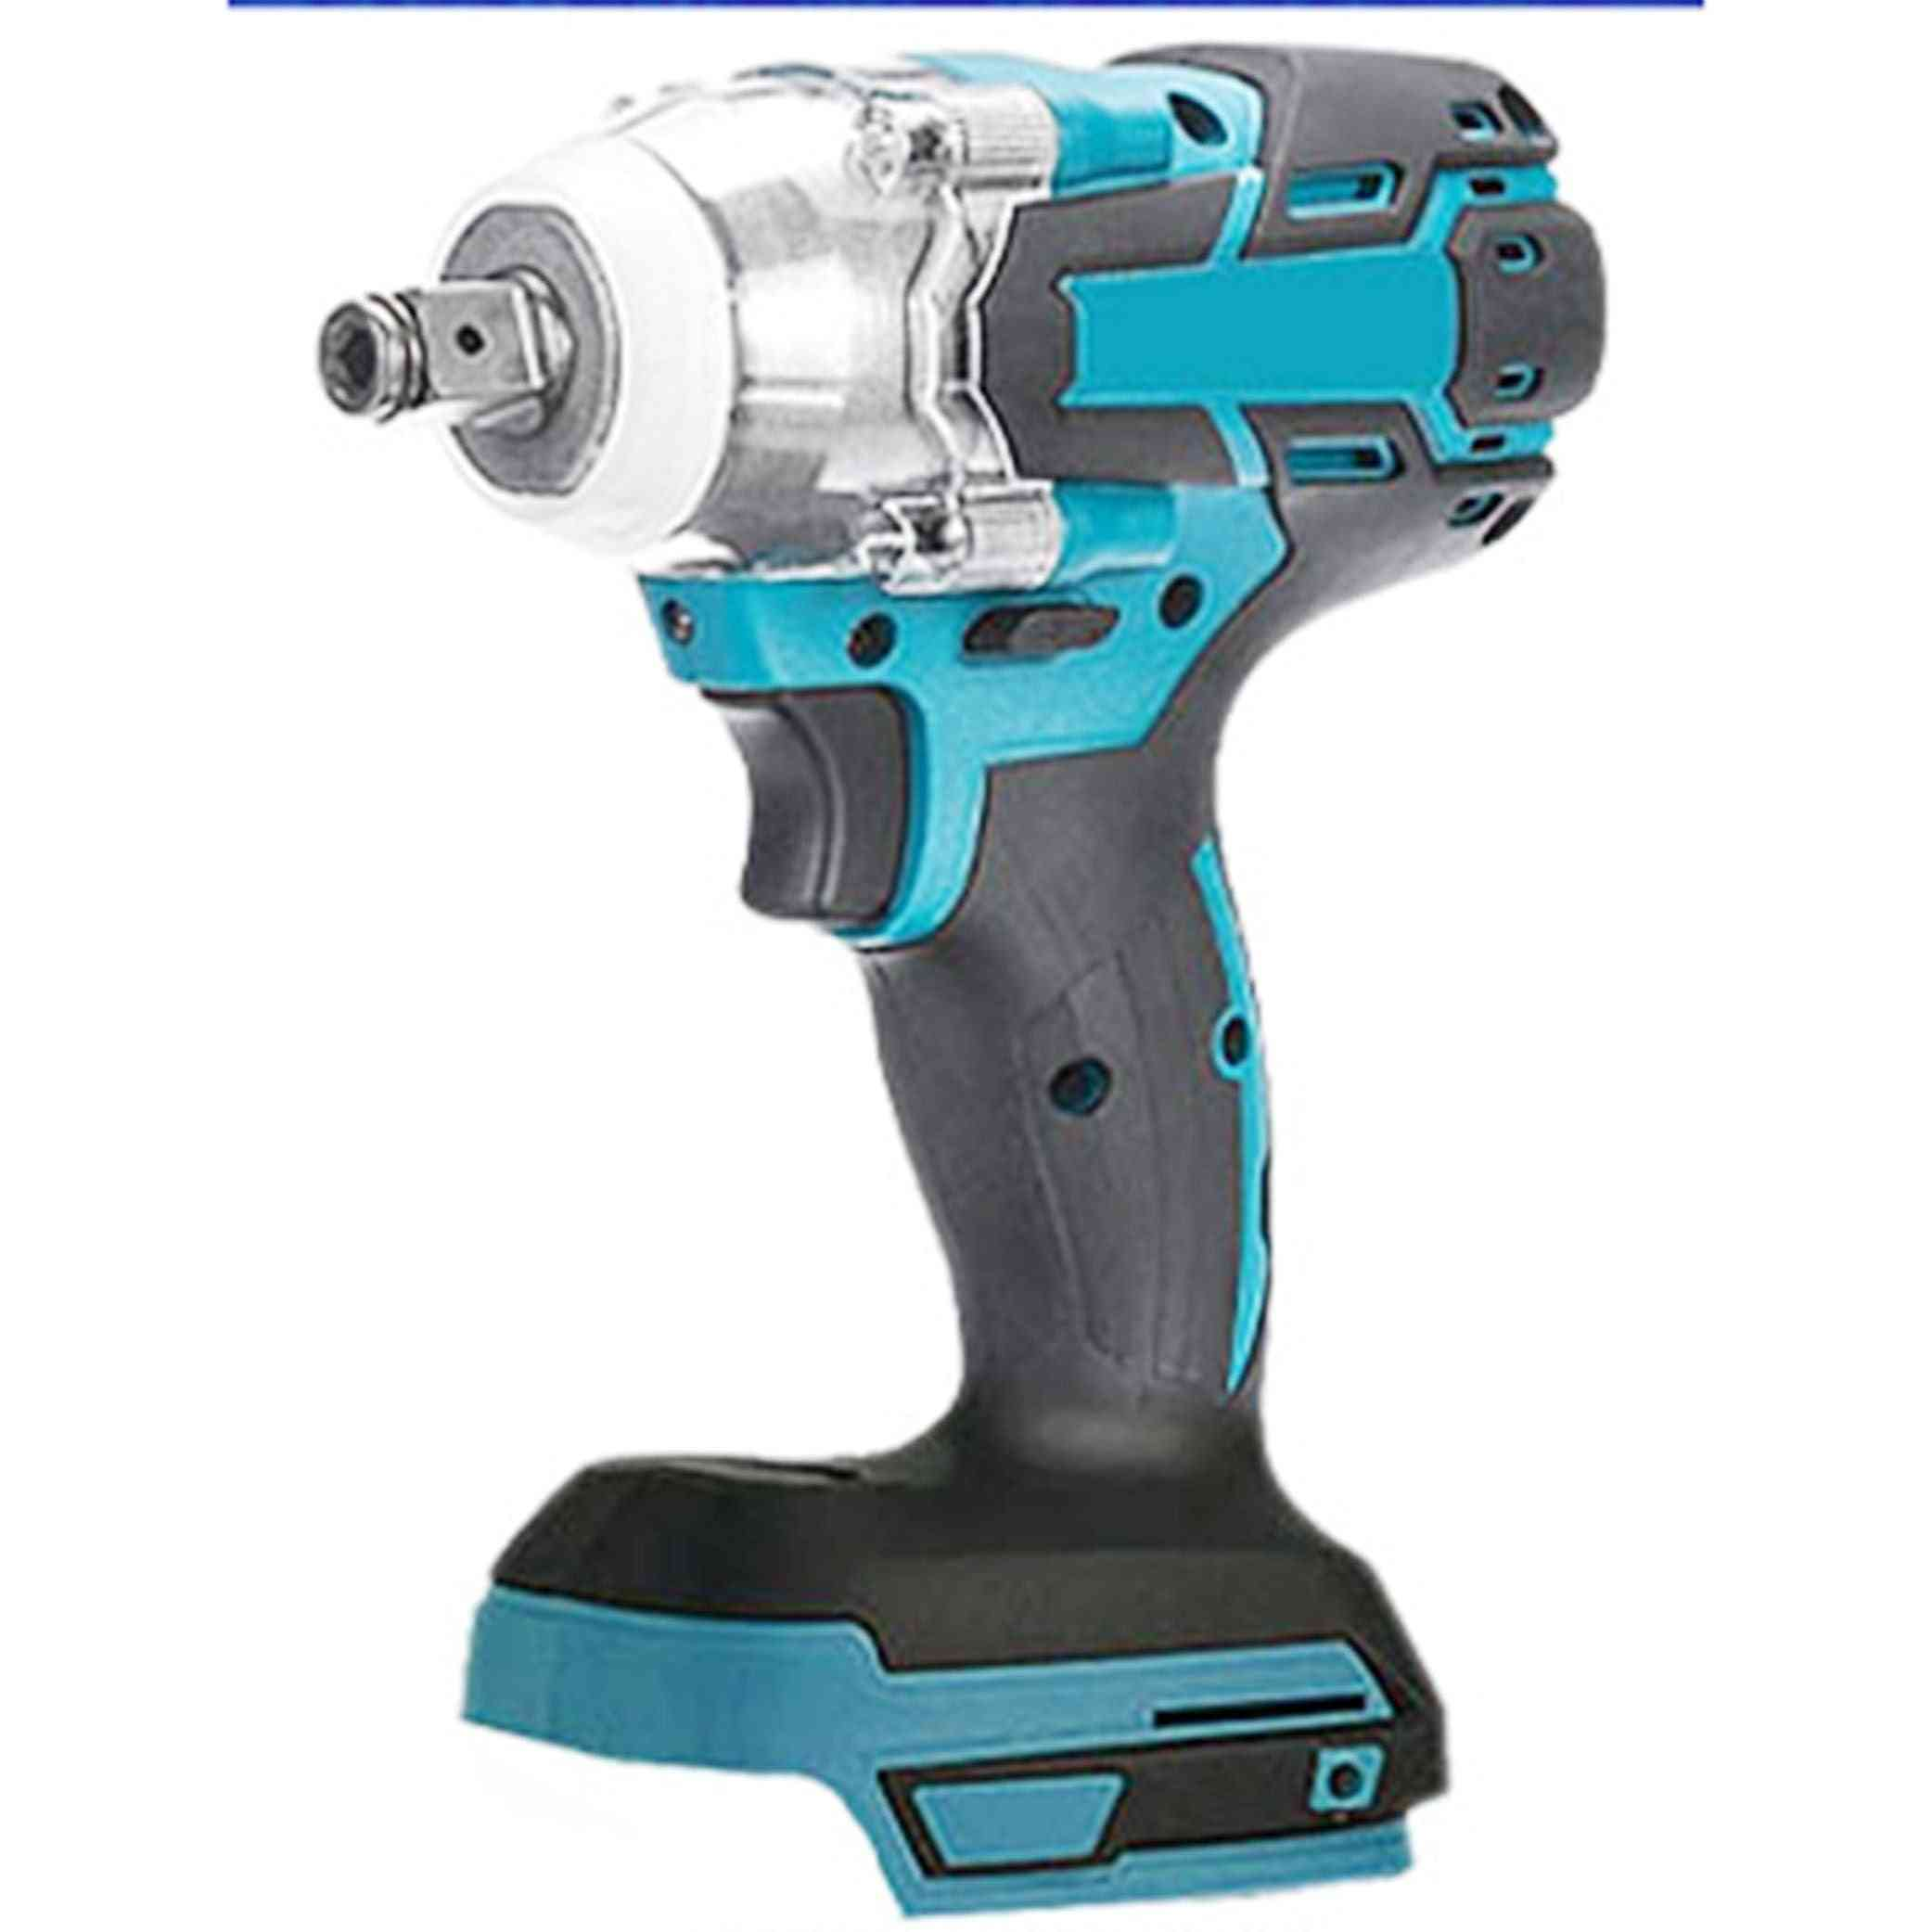 Cordless Impact Wrench Driver Torque 1/2'' Socket